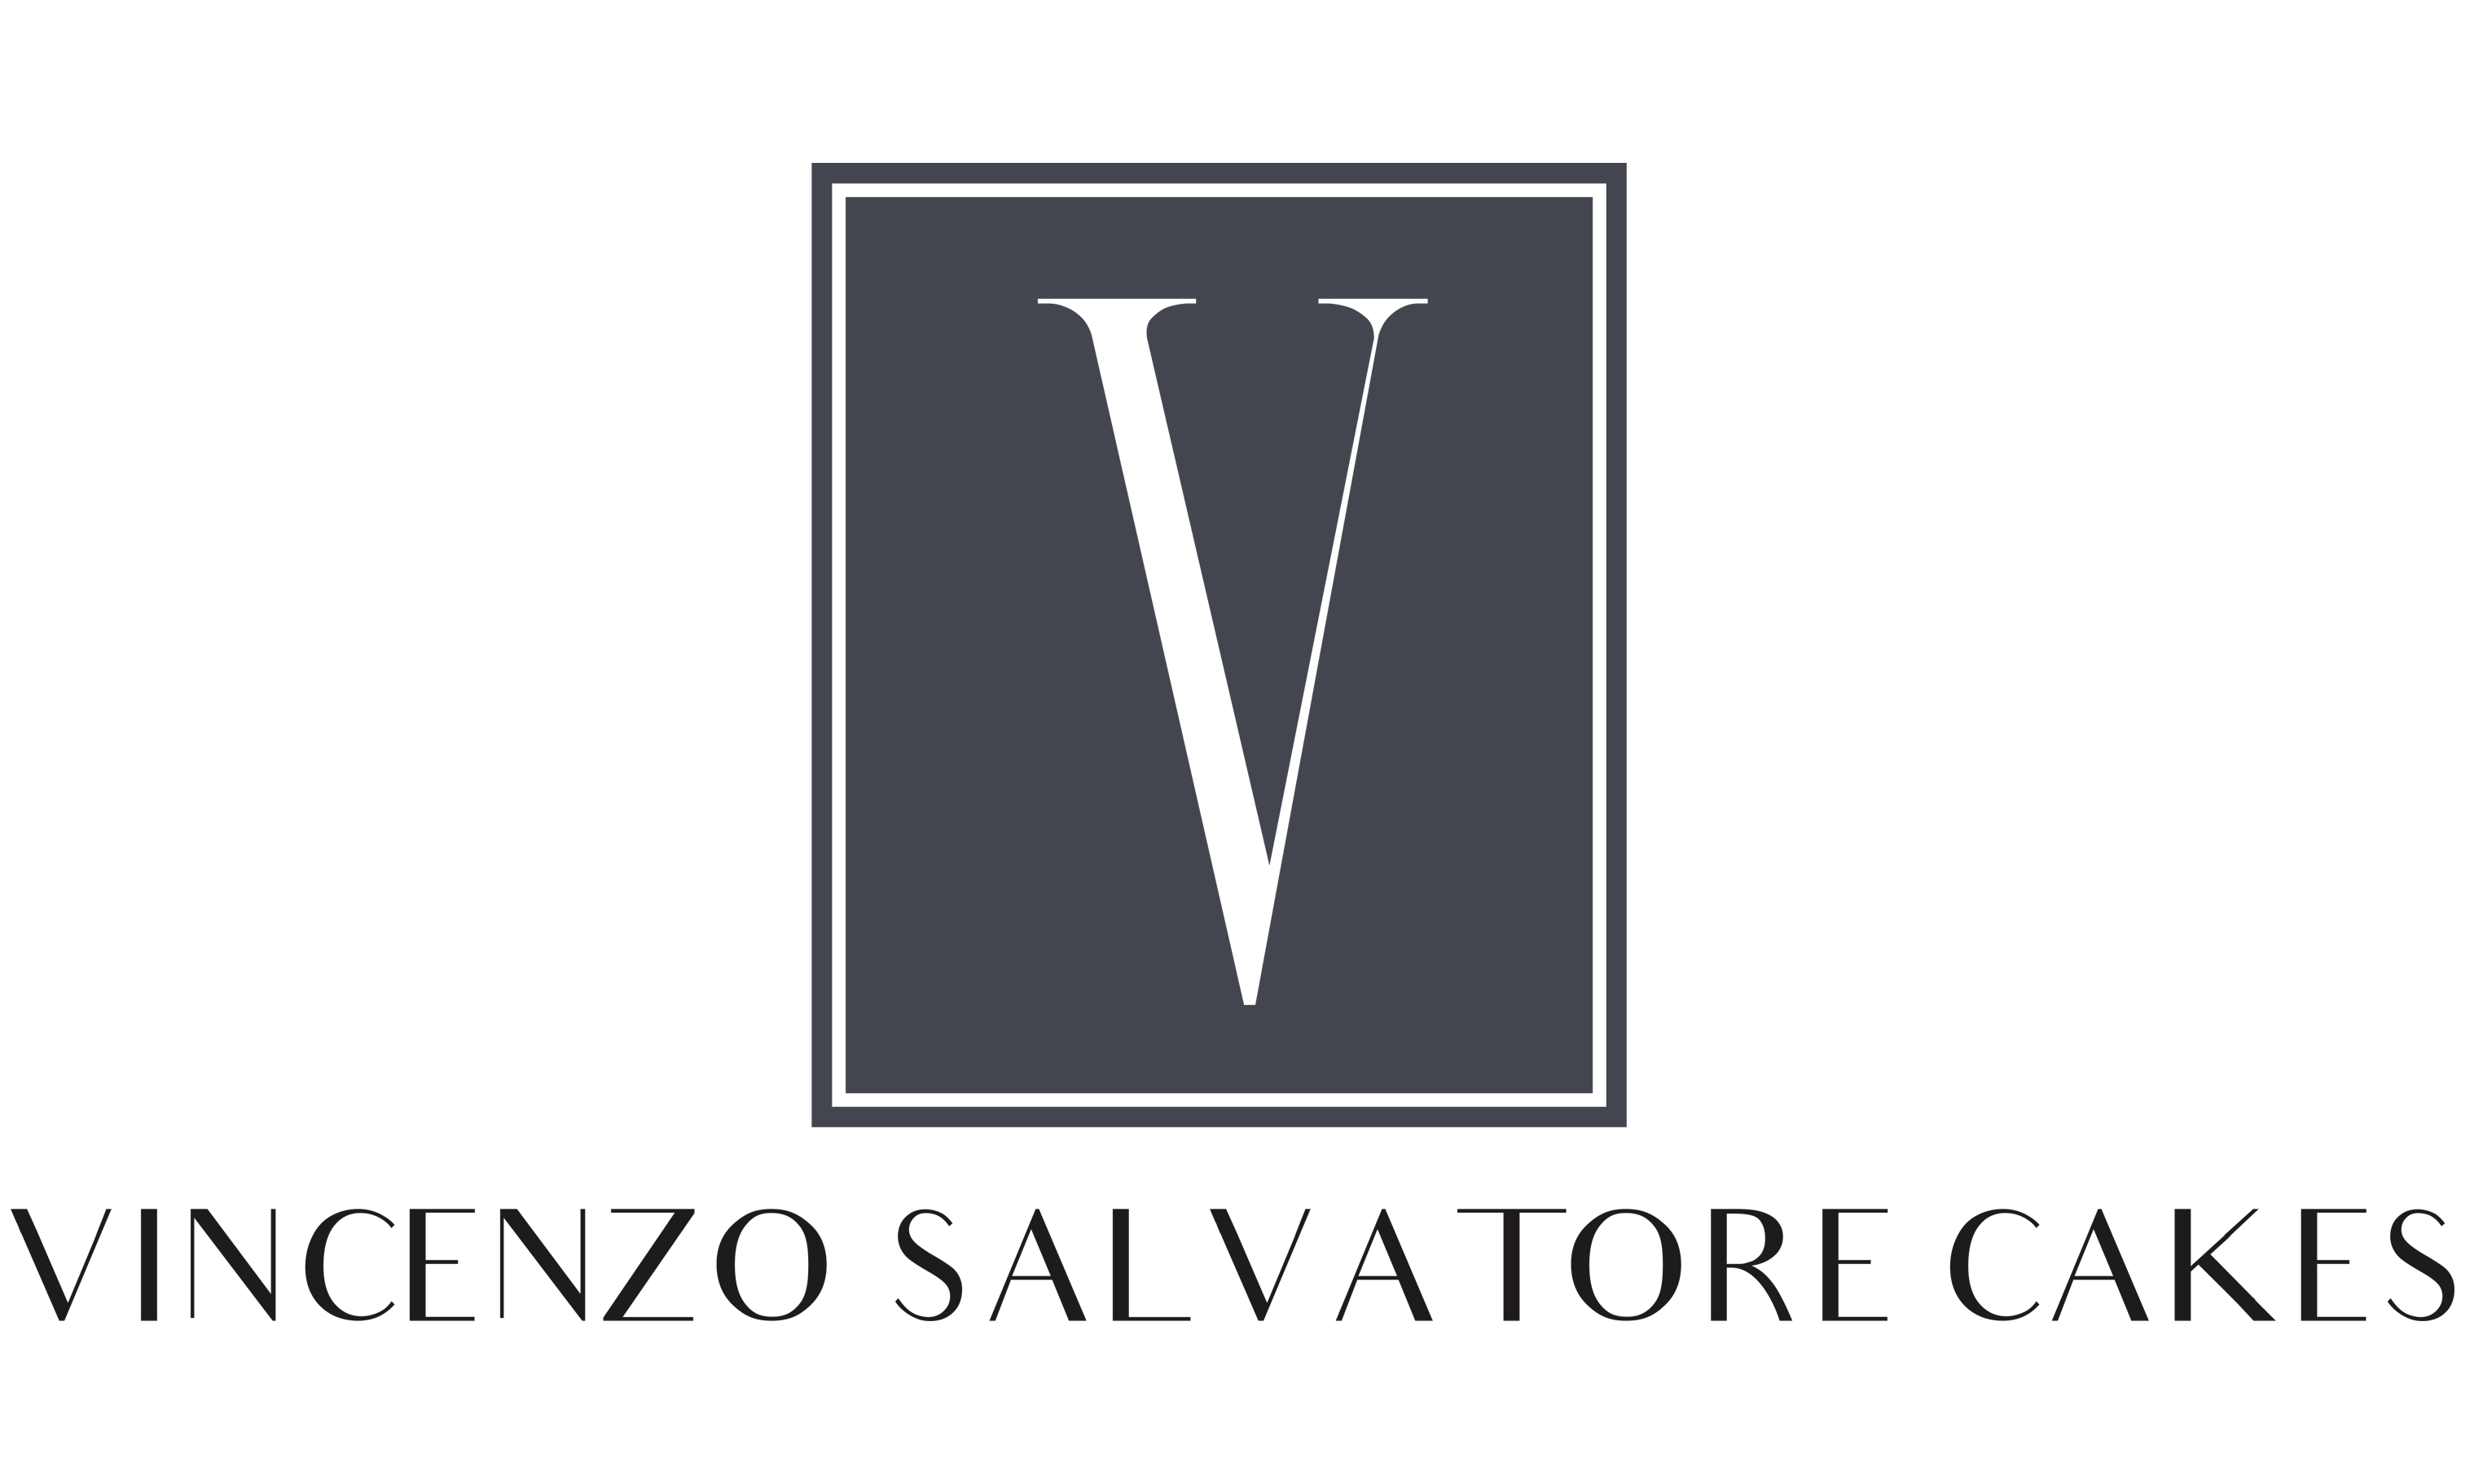 Vincenzo Salvatore Cakes